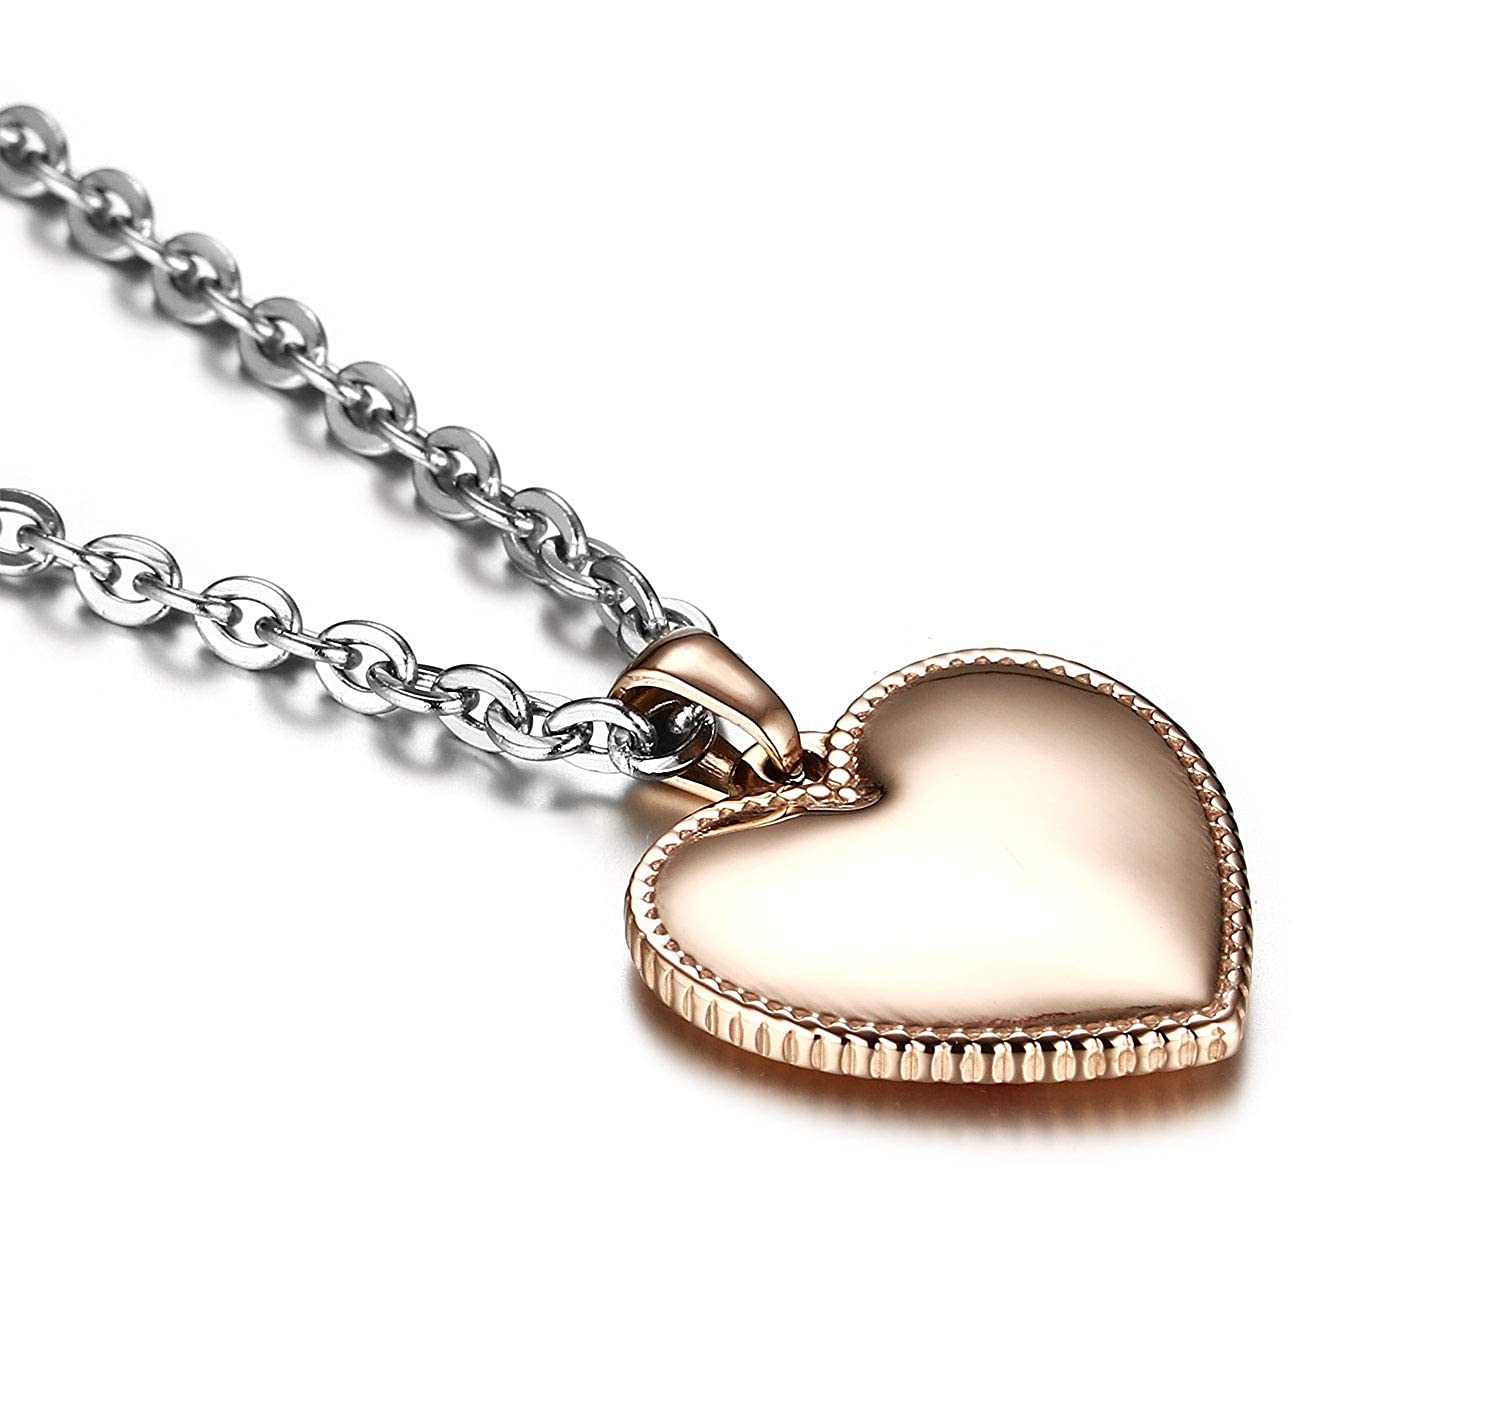 Amazon com: JF JEWELRY Rose Gold-Plated Heart-Shaped Medical